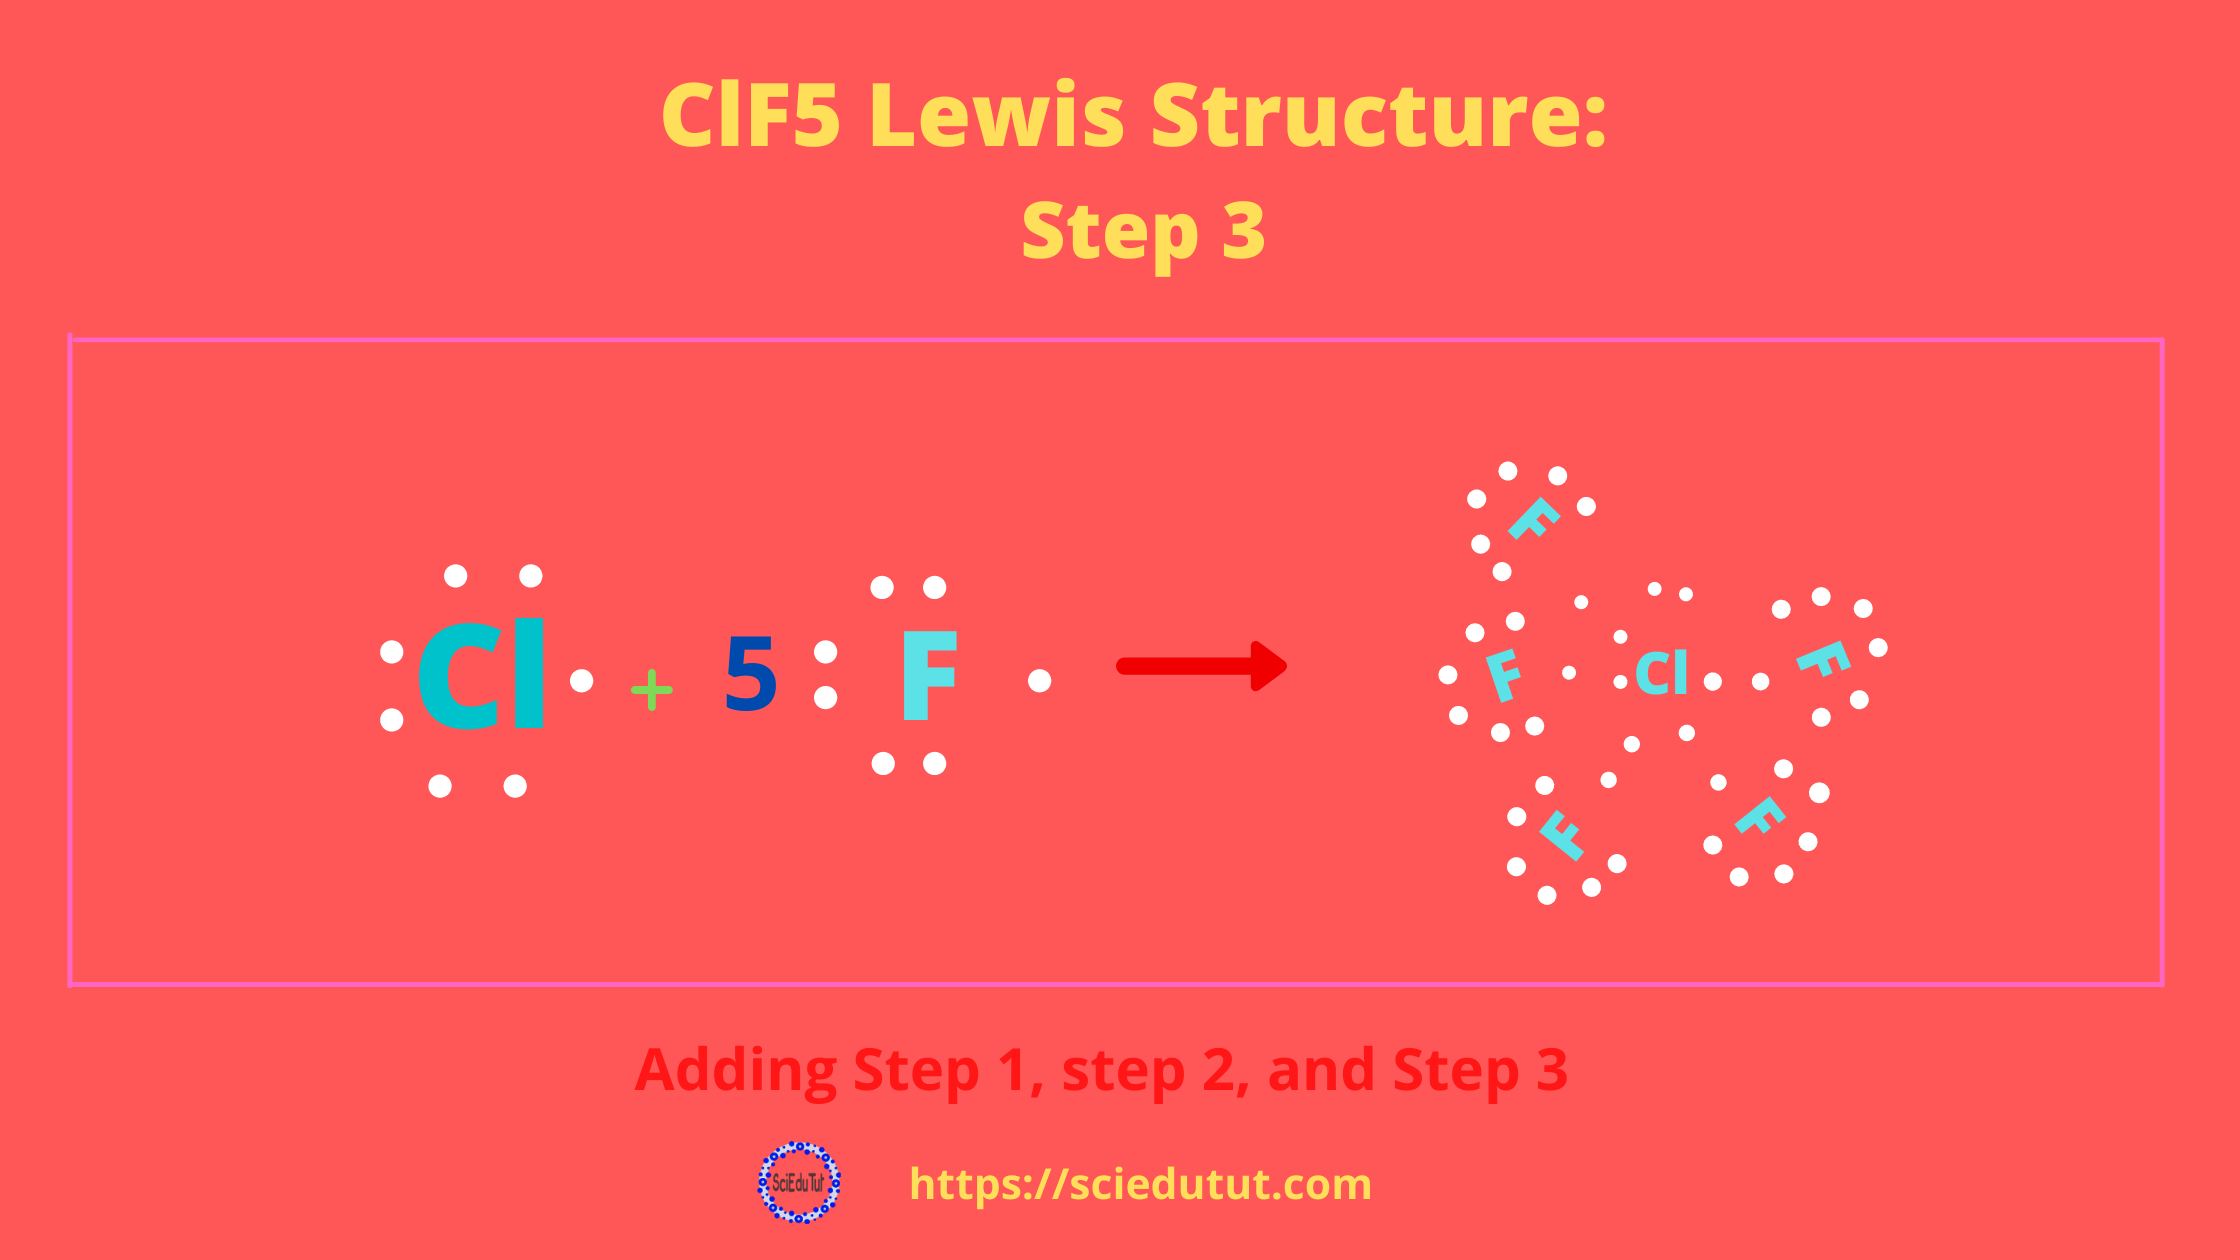 How to draw ClF5 Lewis Structure?